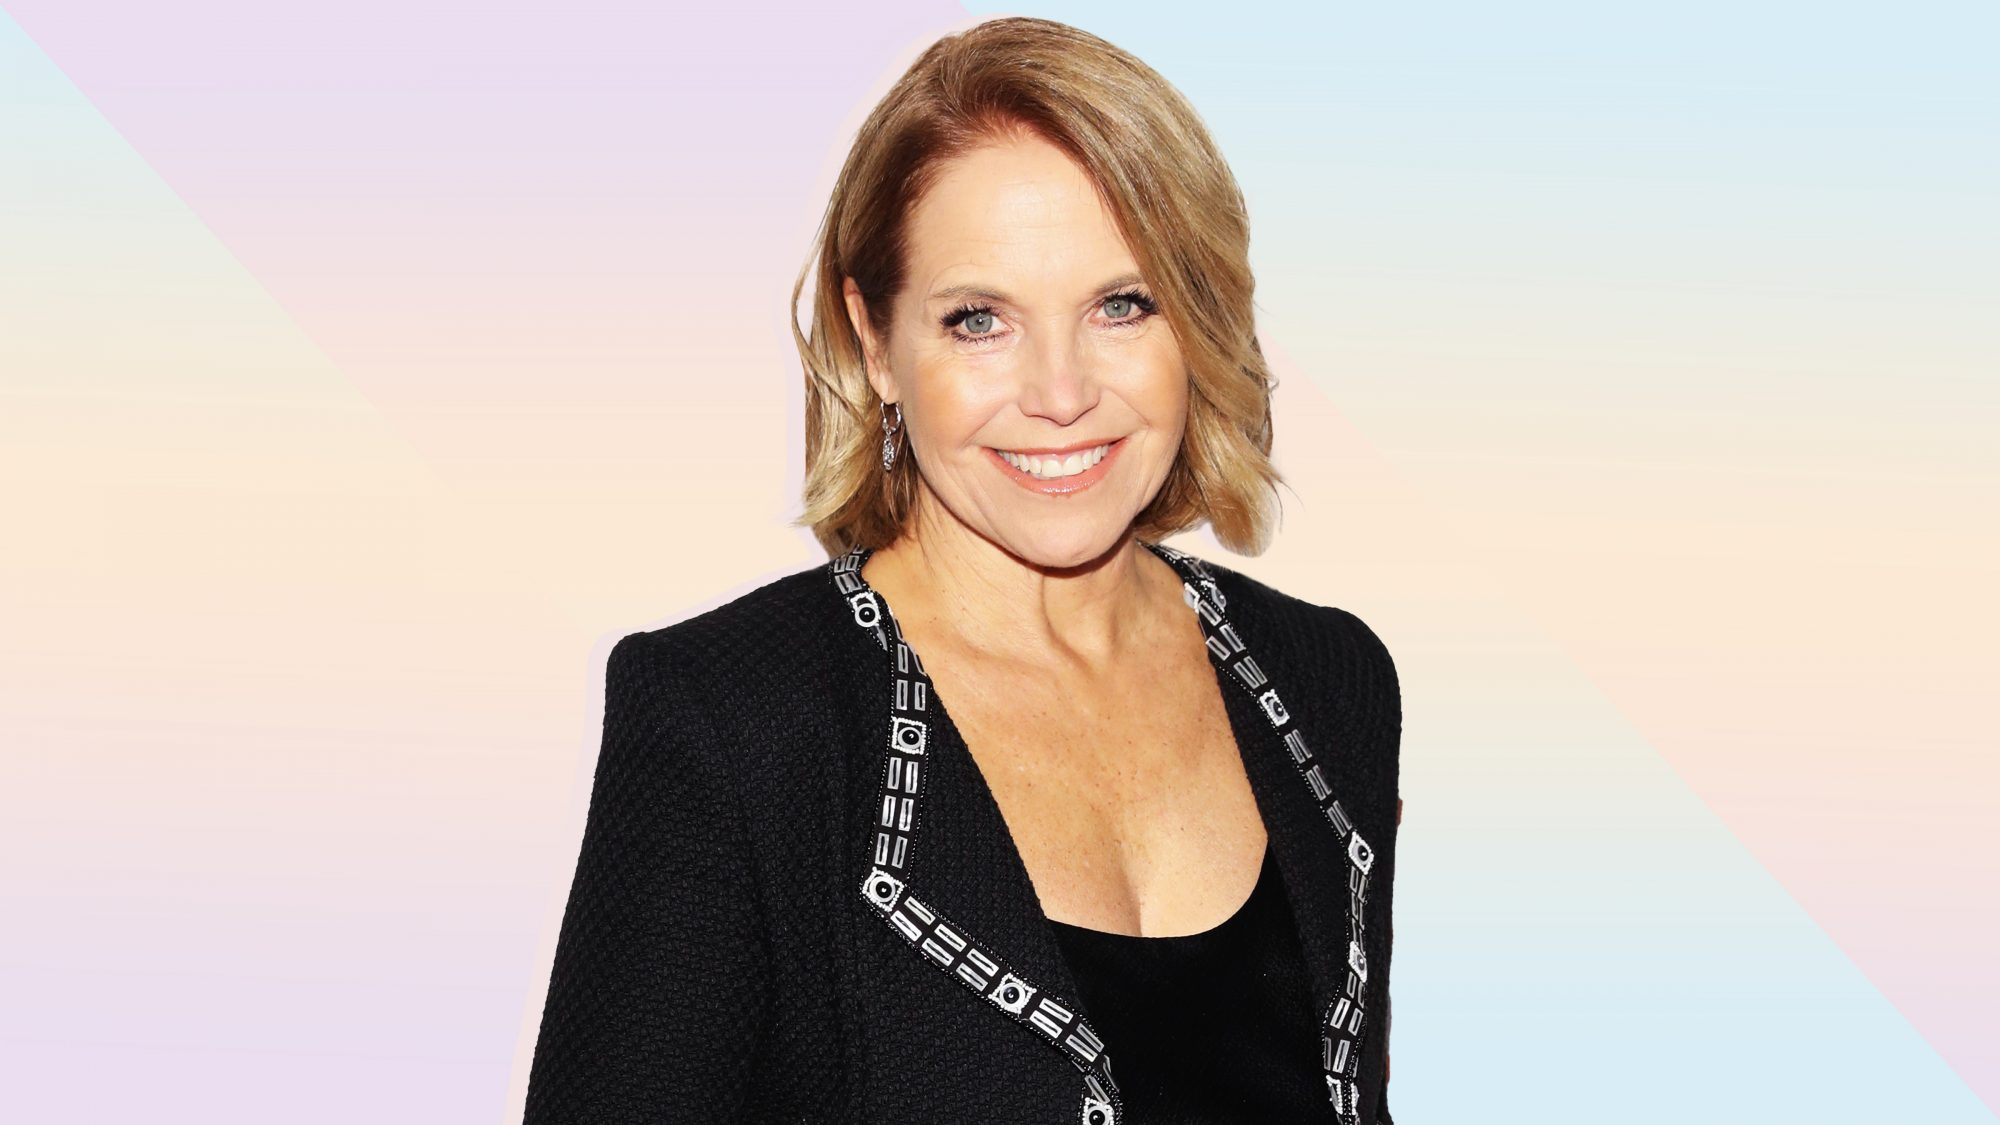 Katie-Couric-Bulimia-GettyImages-1060096650